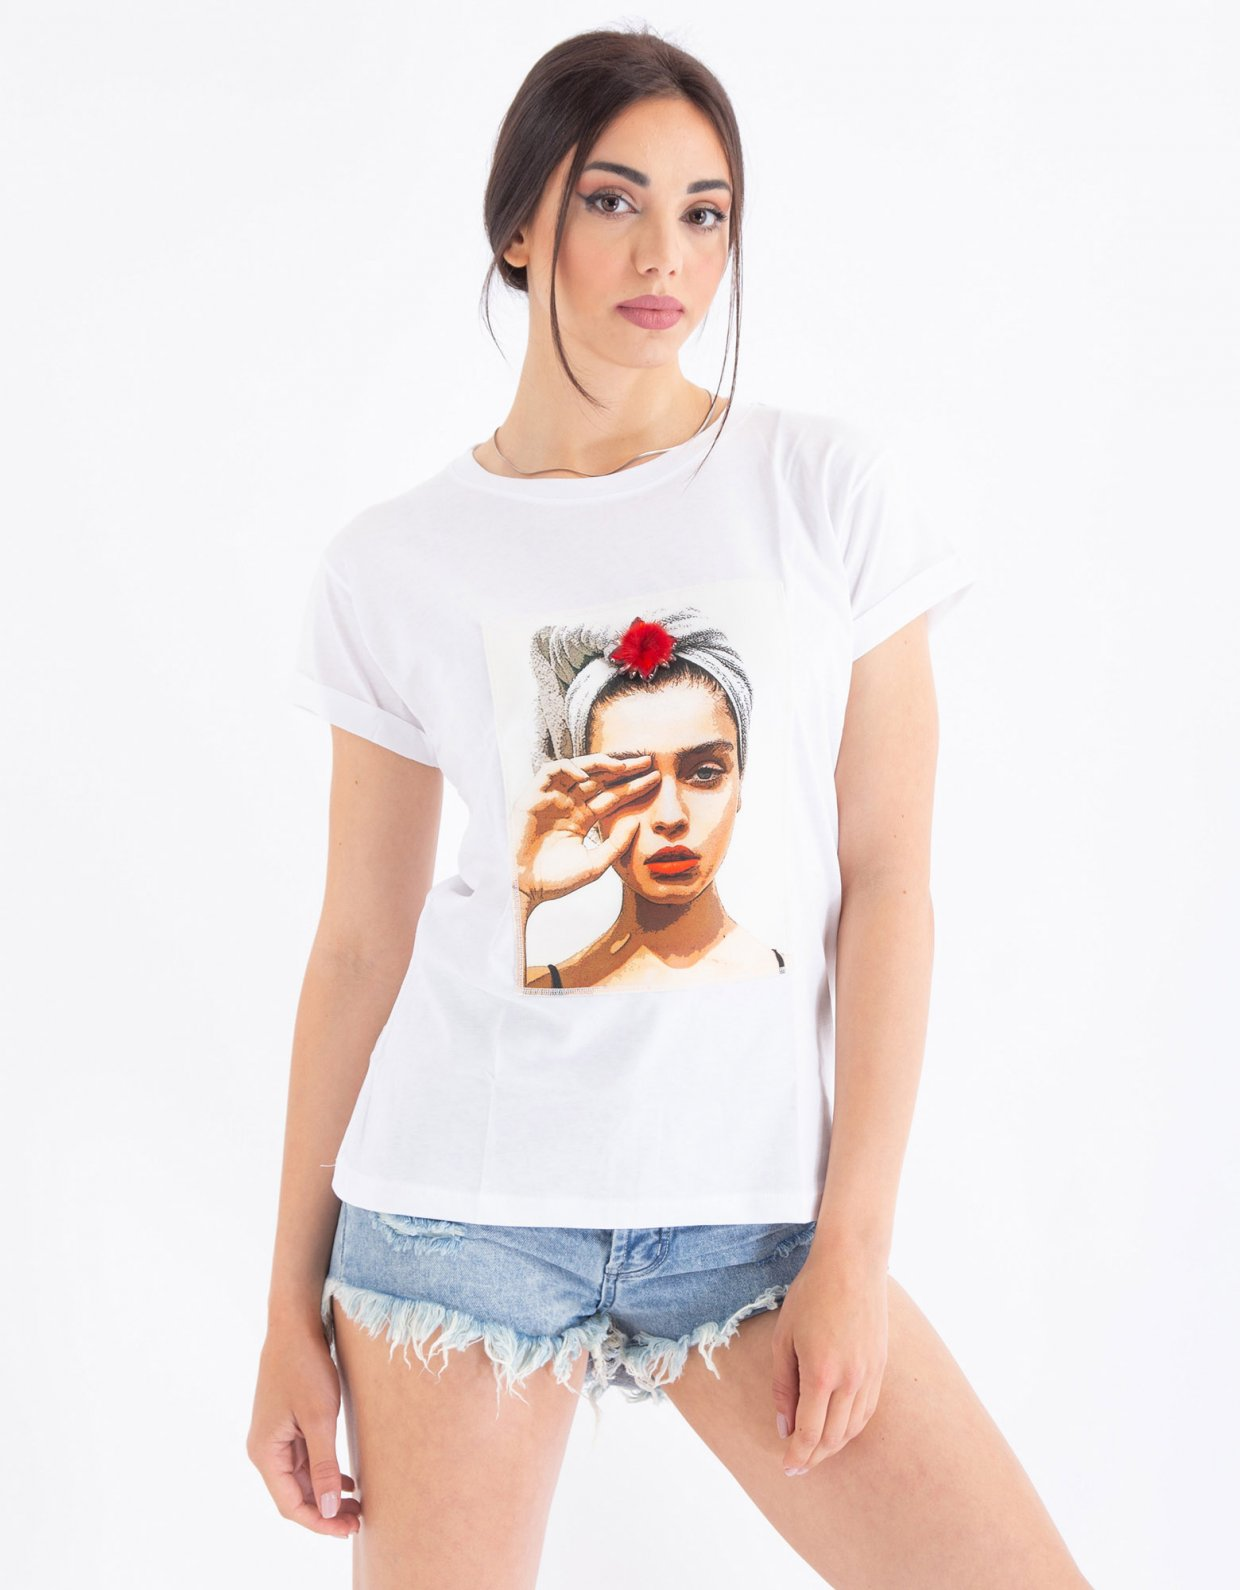 Ripped Cotton Turban white t-shirt